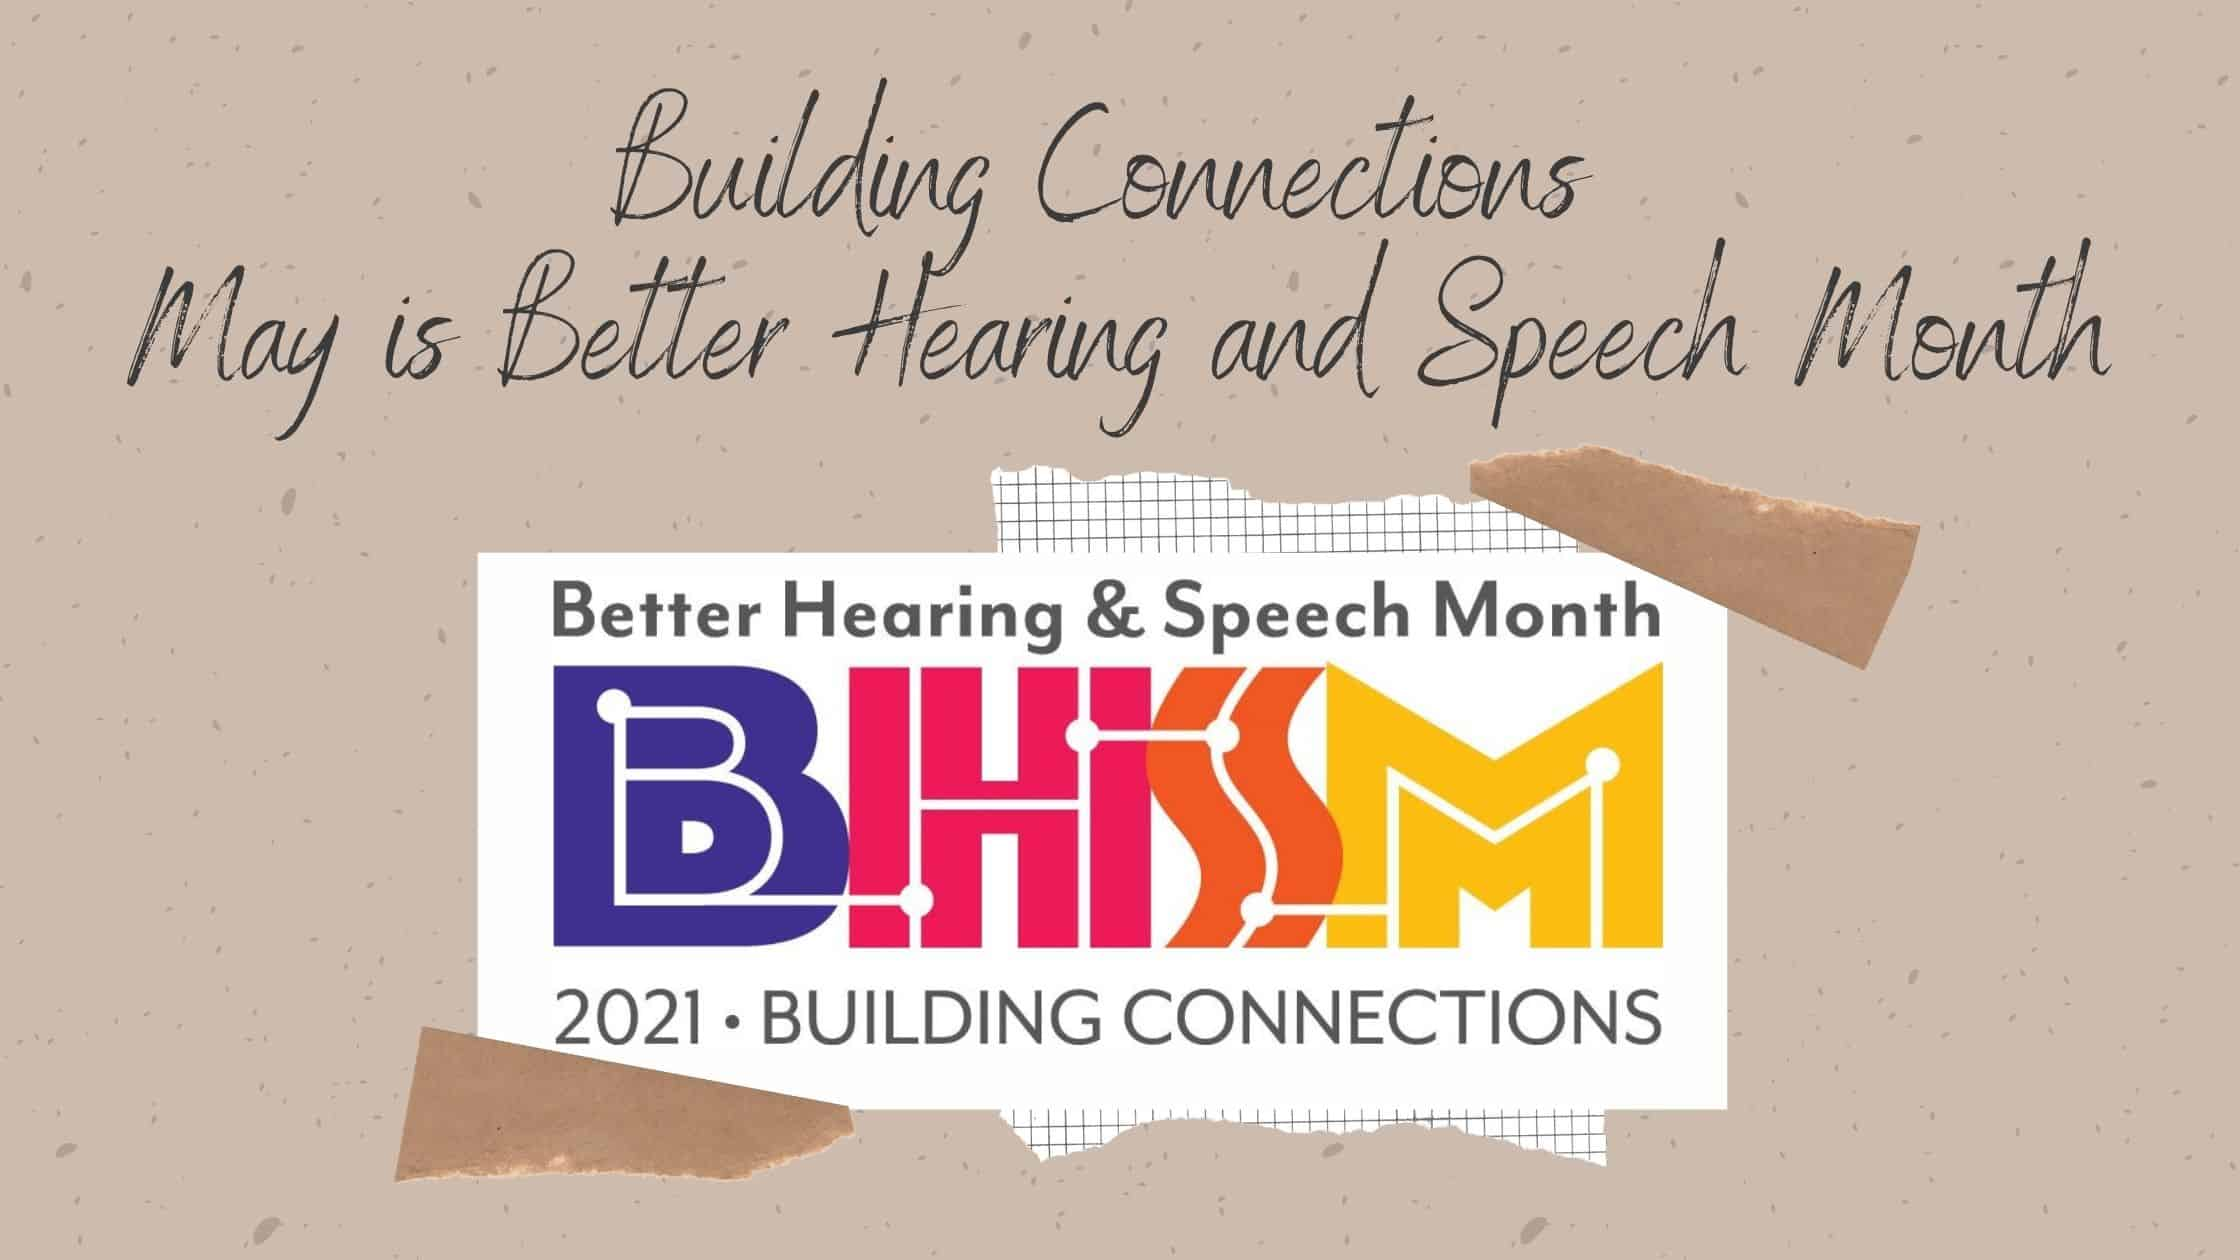 Building Connections | May is Better Hearing and Speech Month